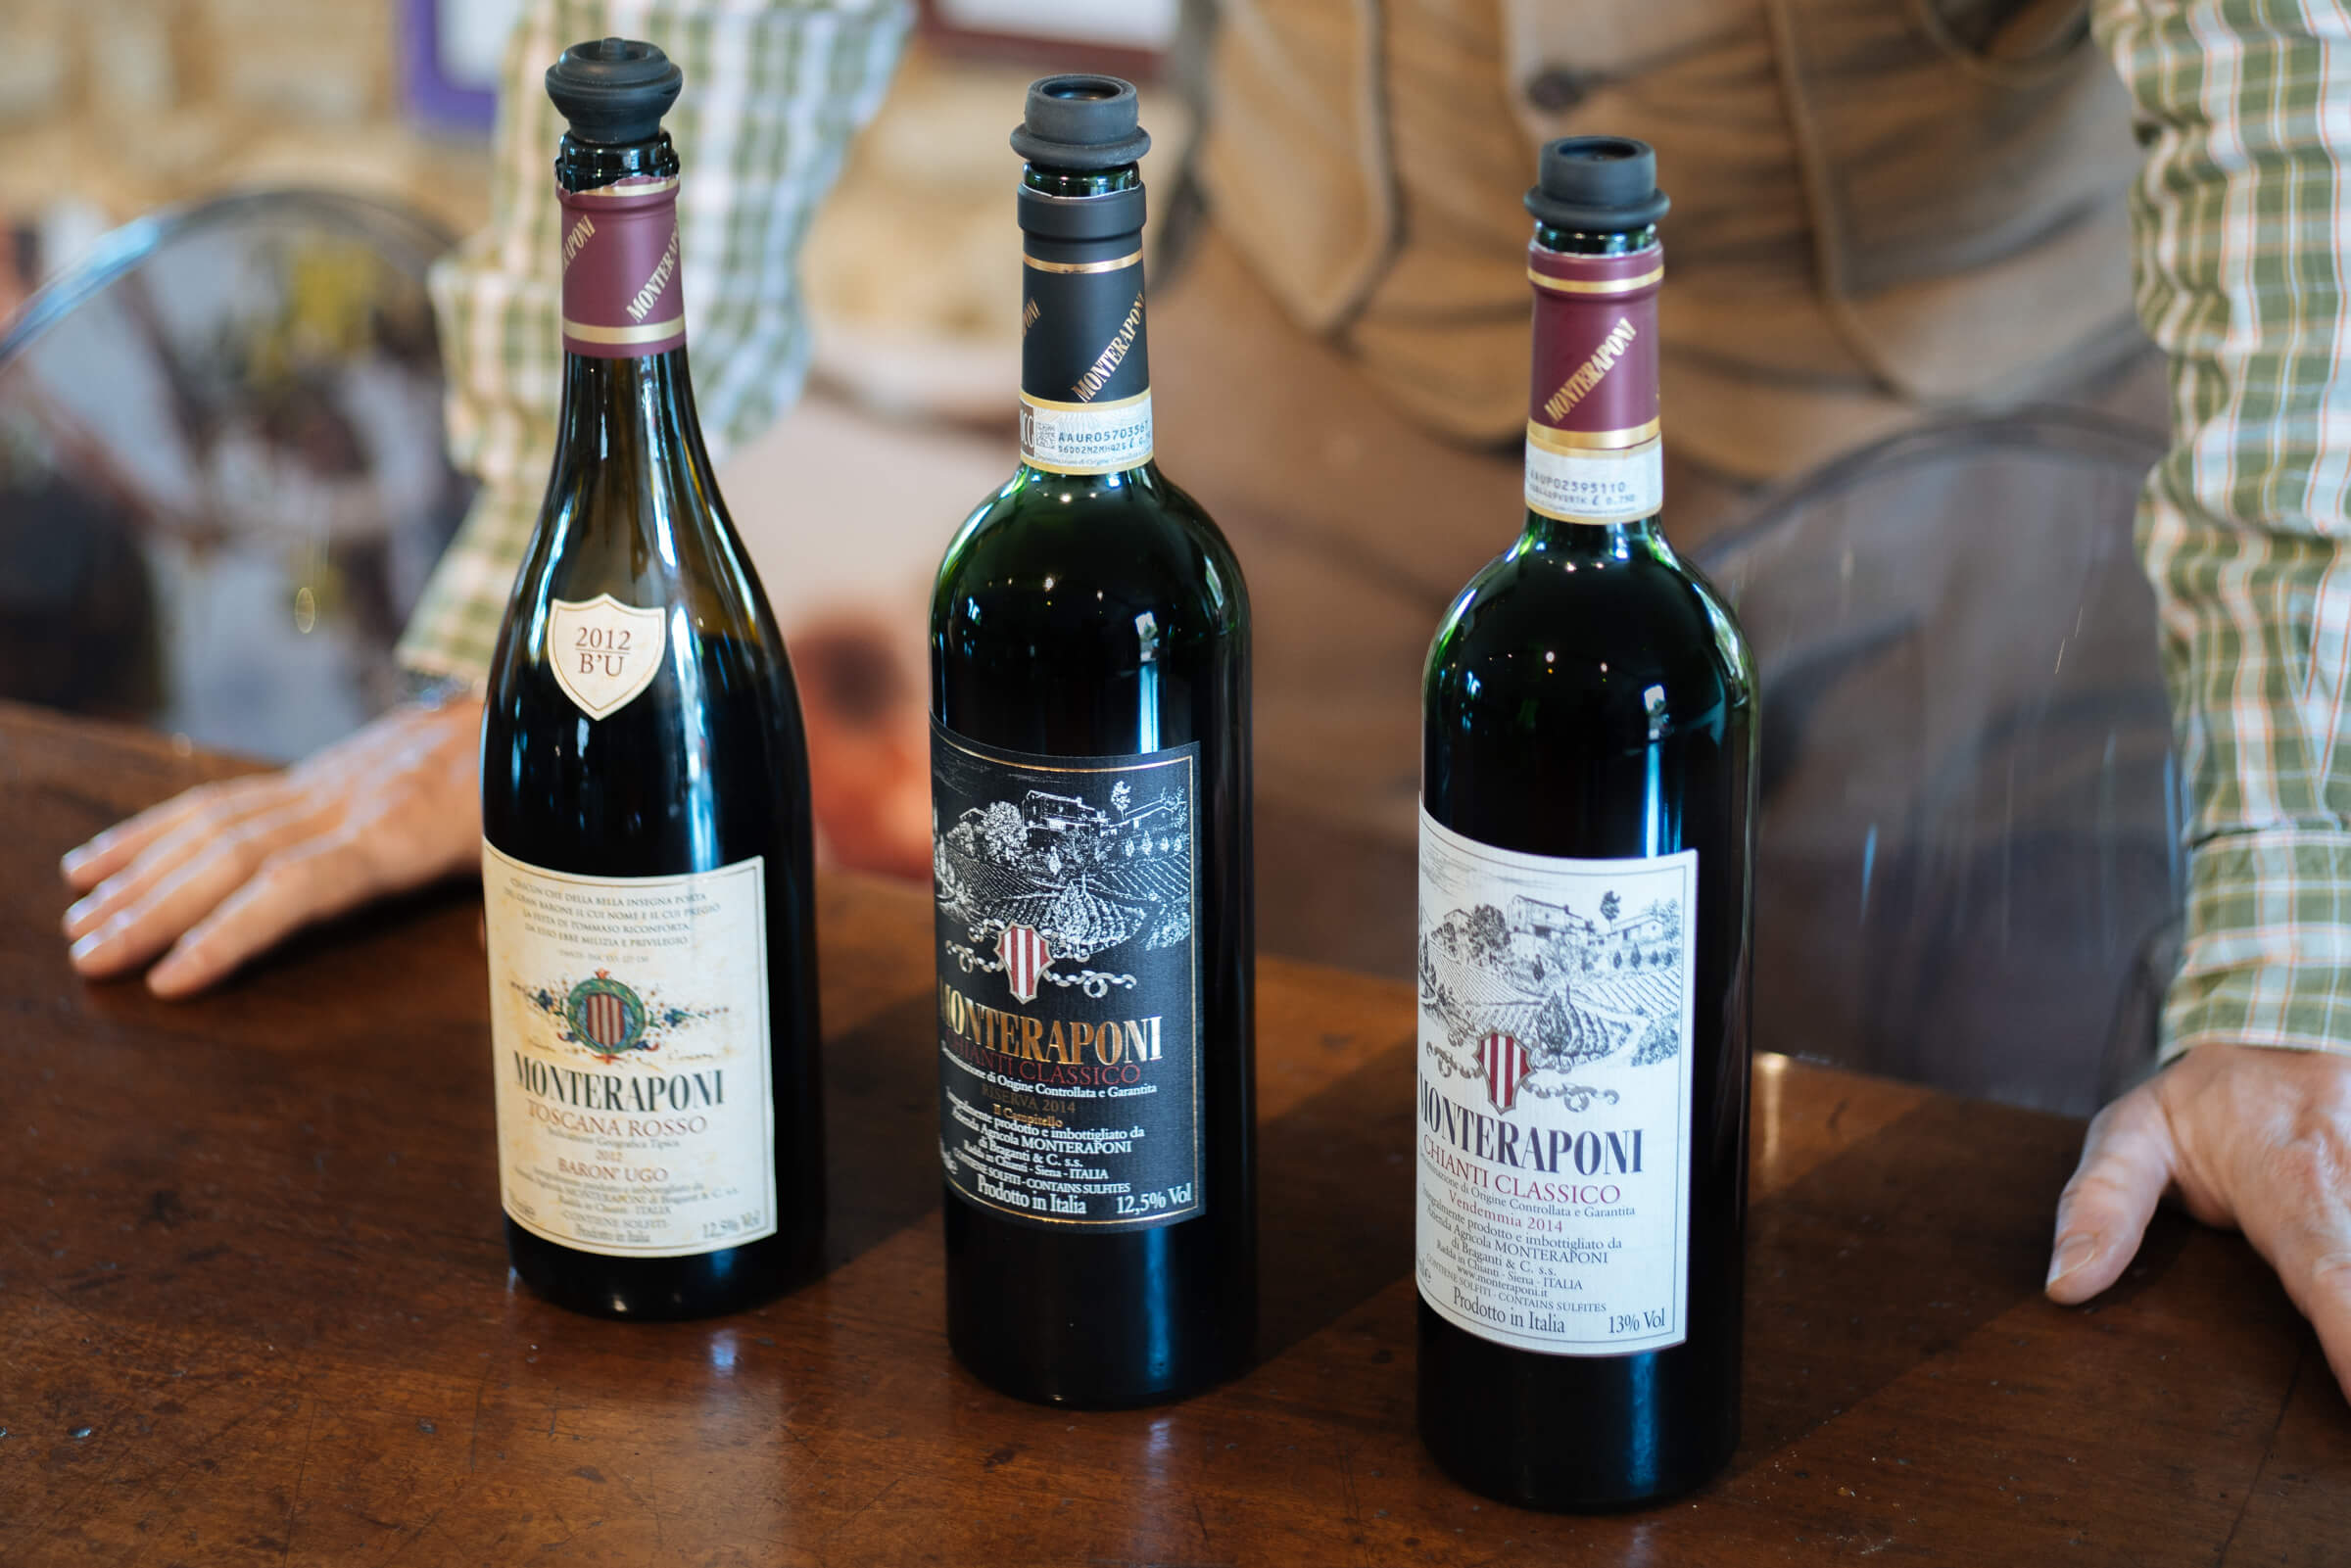 Montreponi is the best chianti wine around from Tuscany, The Taste SF